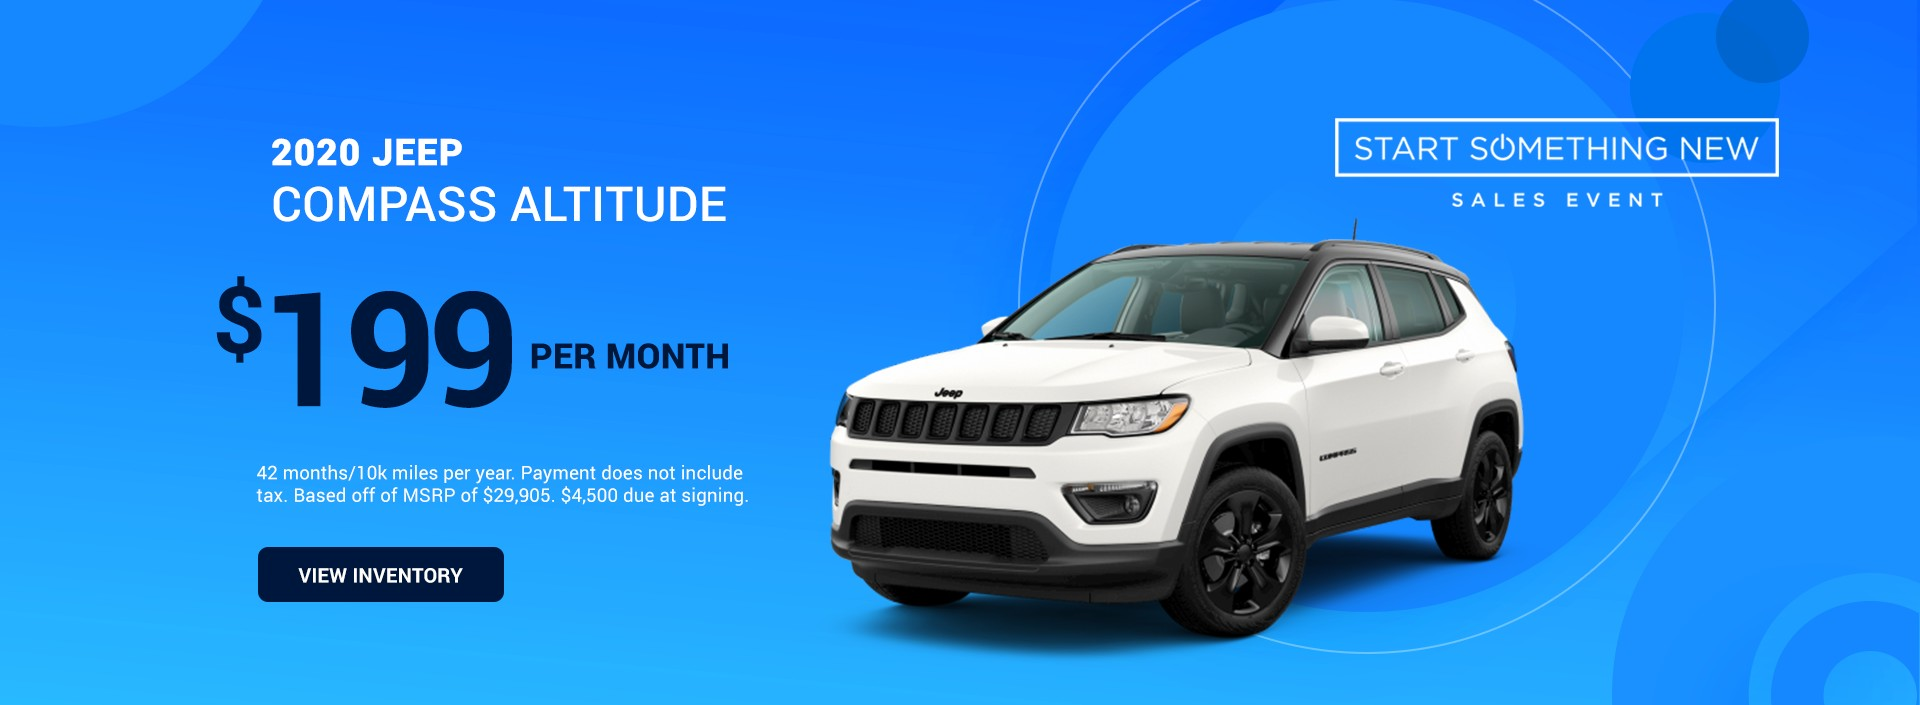 2020 Jeep Compass Altitude - Start Something New Event